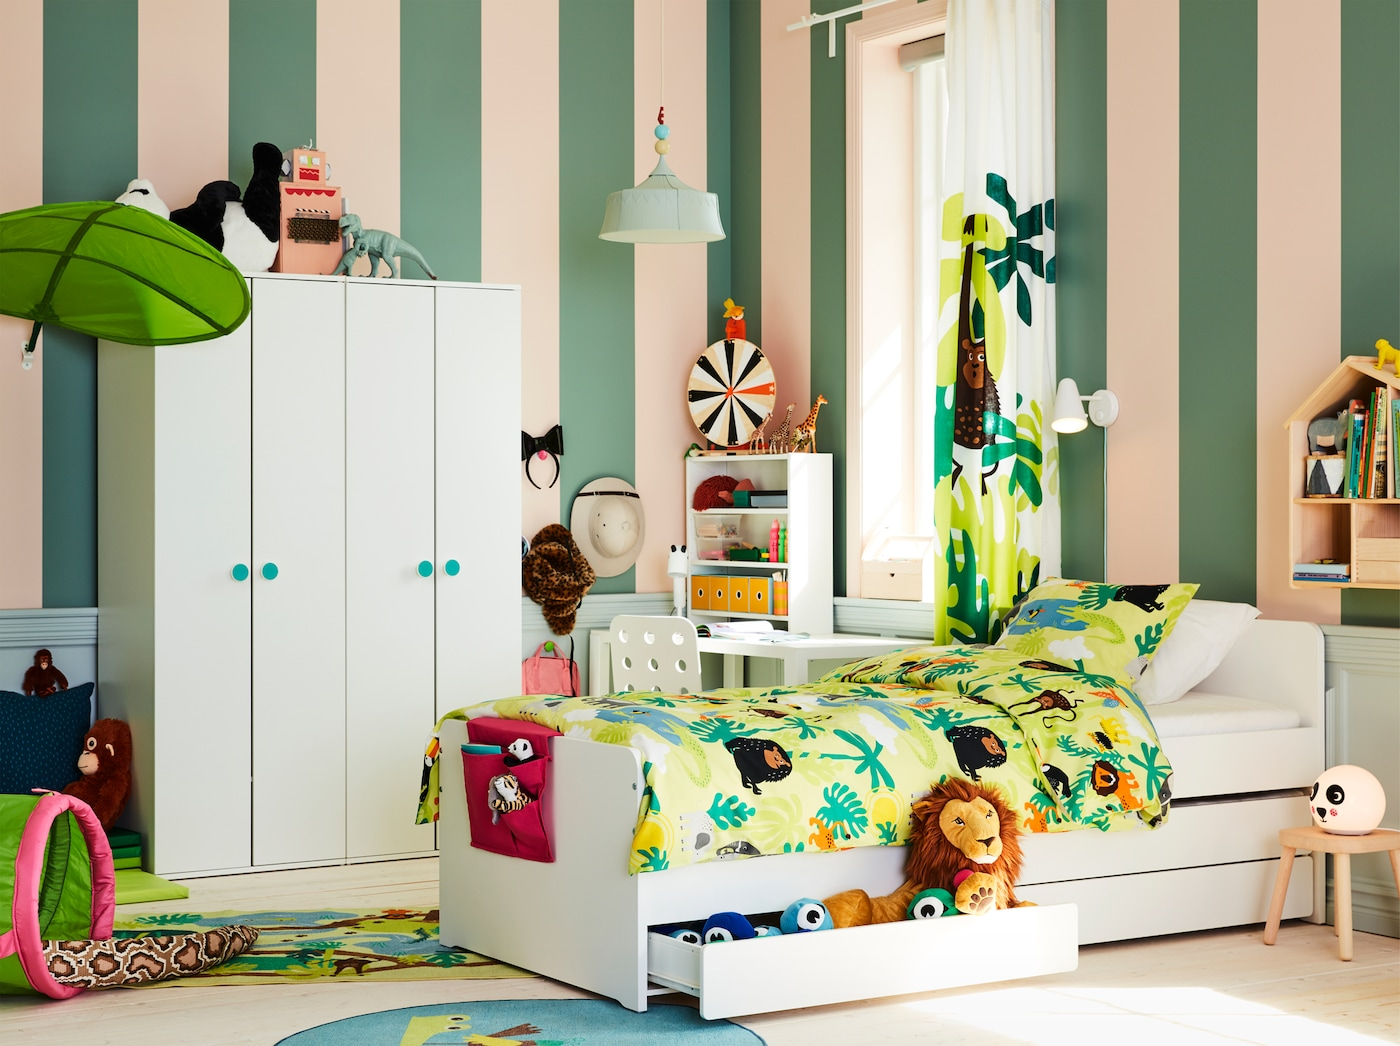 Jungle-themed children's room with a white bed frame, soft toys, green textiles with animal prints and a leaf-shaped canopy.